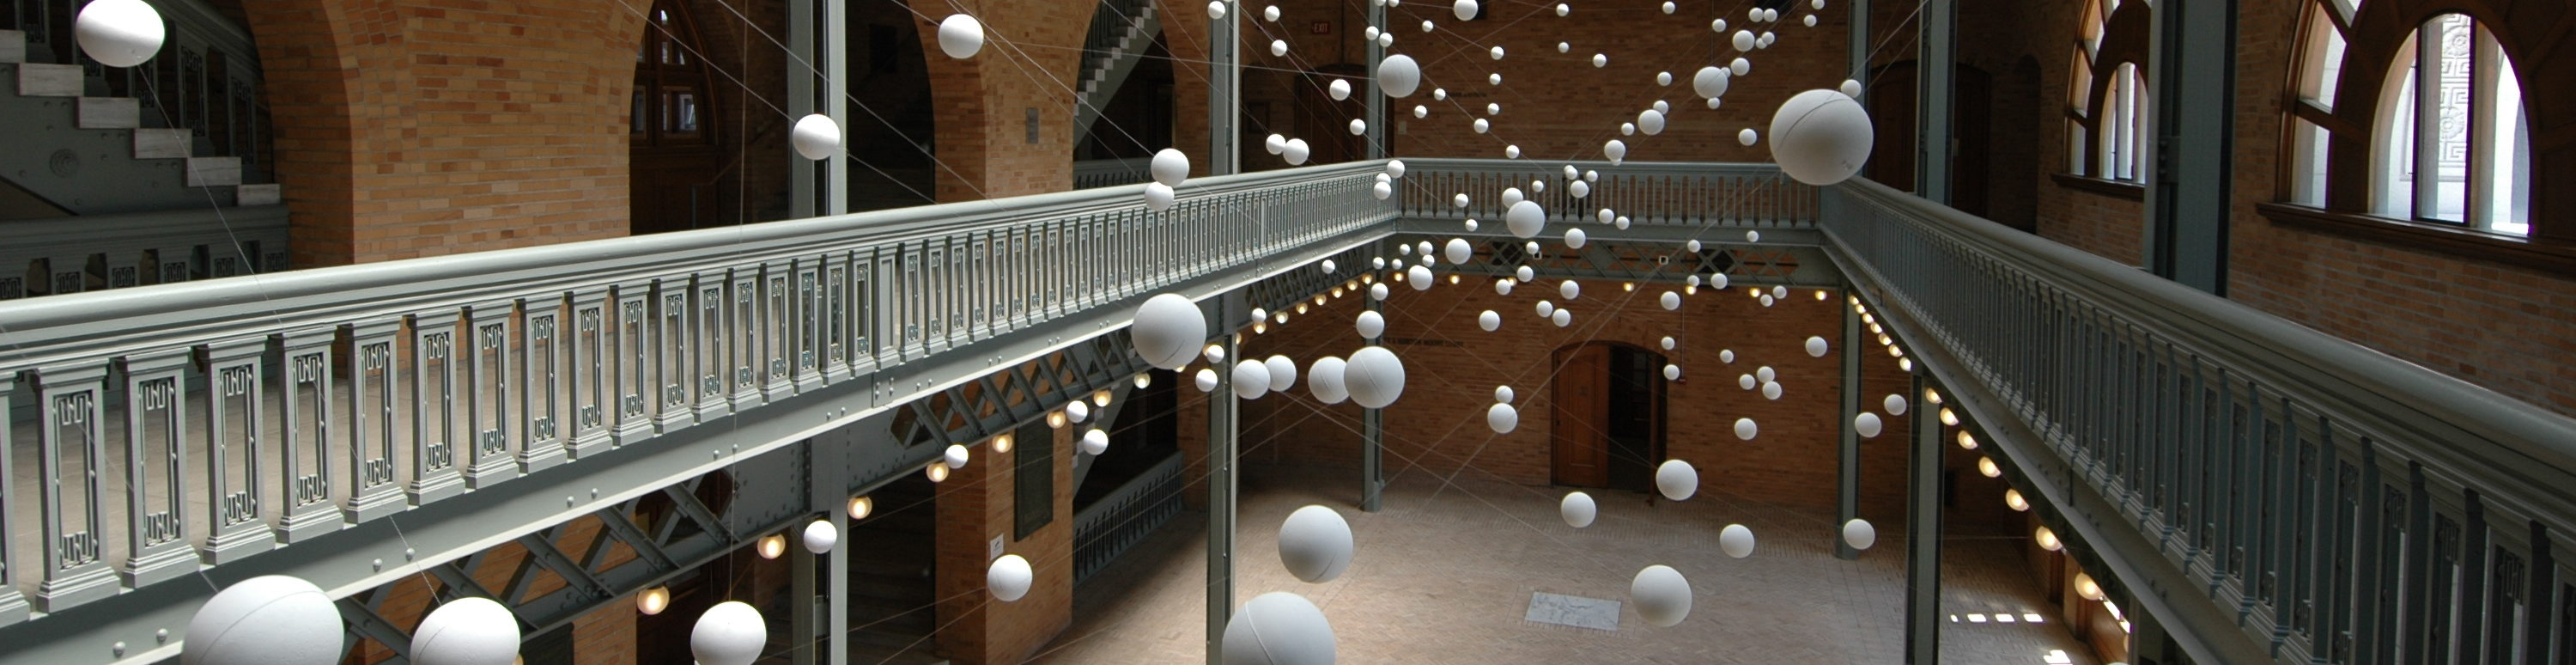 Foam balls suspended in the atrium of Hearst Memorial Mining Building in an art installation by J. Ignacio Diaz de Rabago